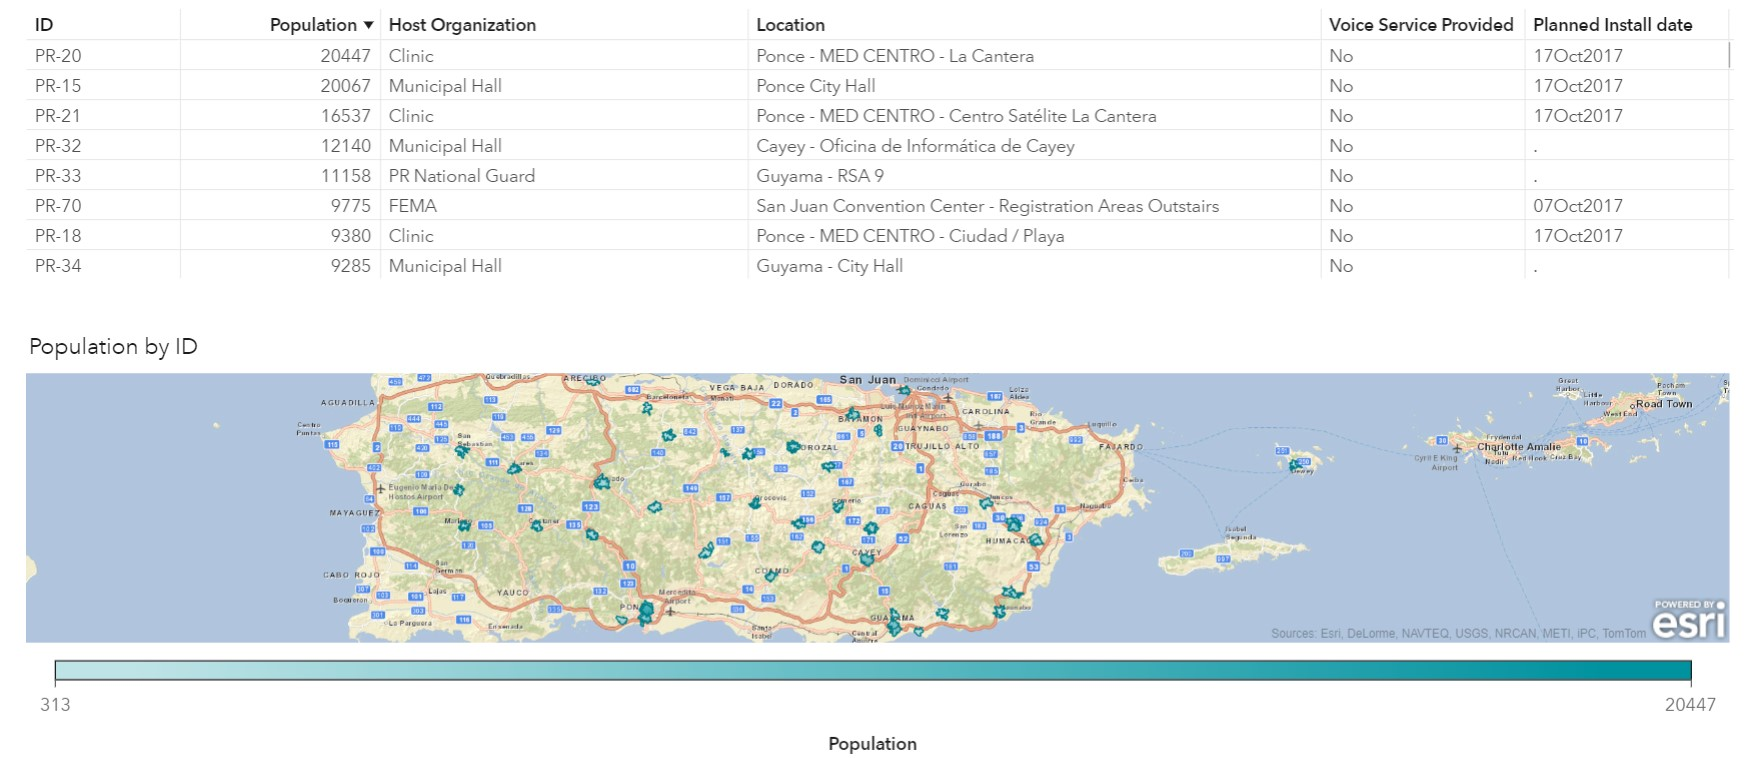 Hostos Campus Map.Analytics Helps Puerto Rico Restore Communications After Disaster